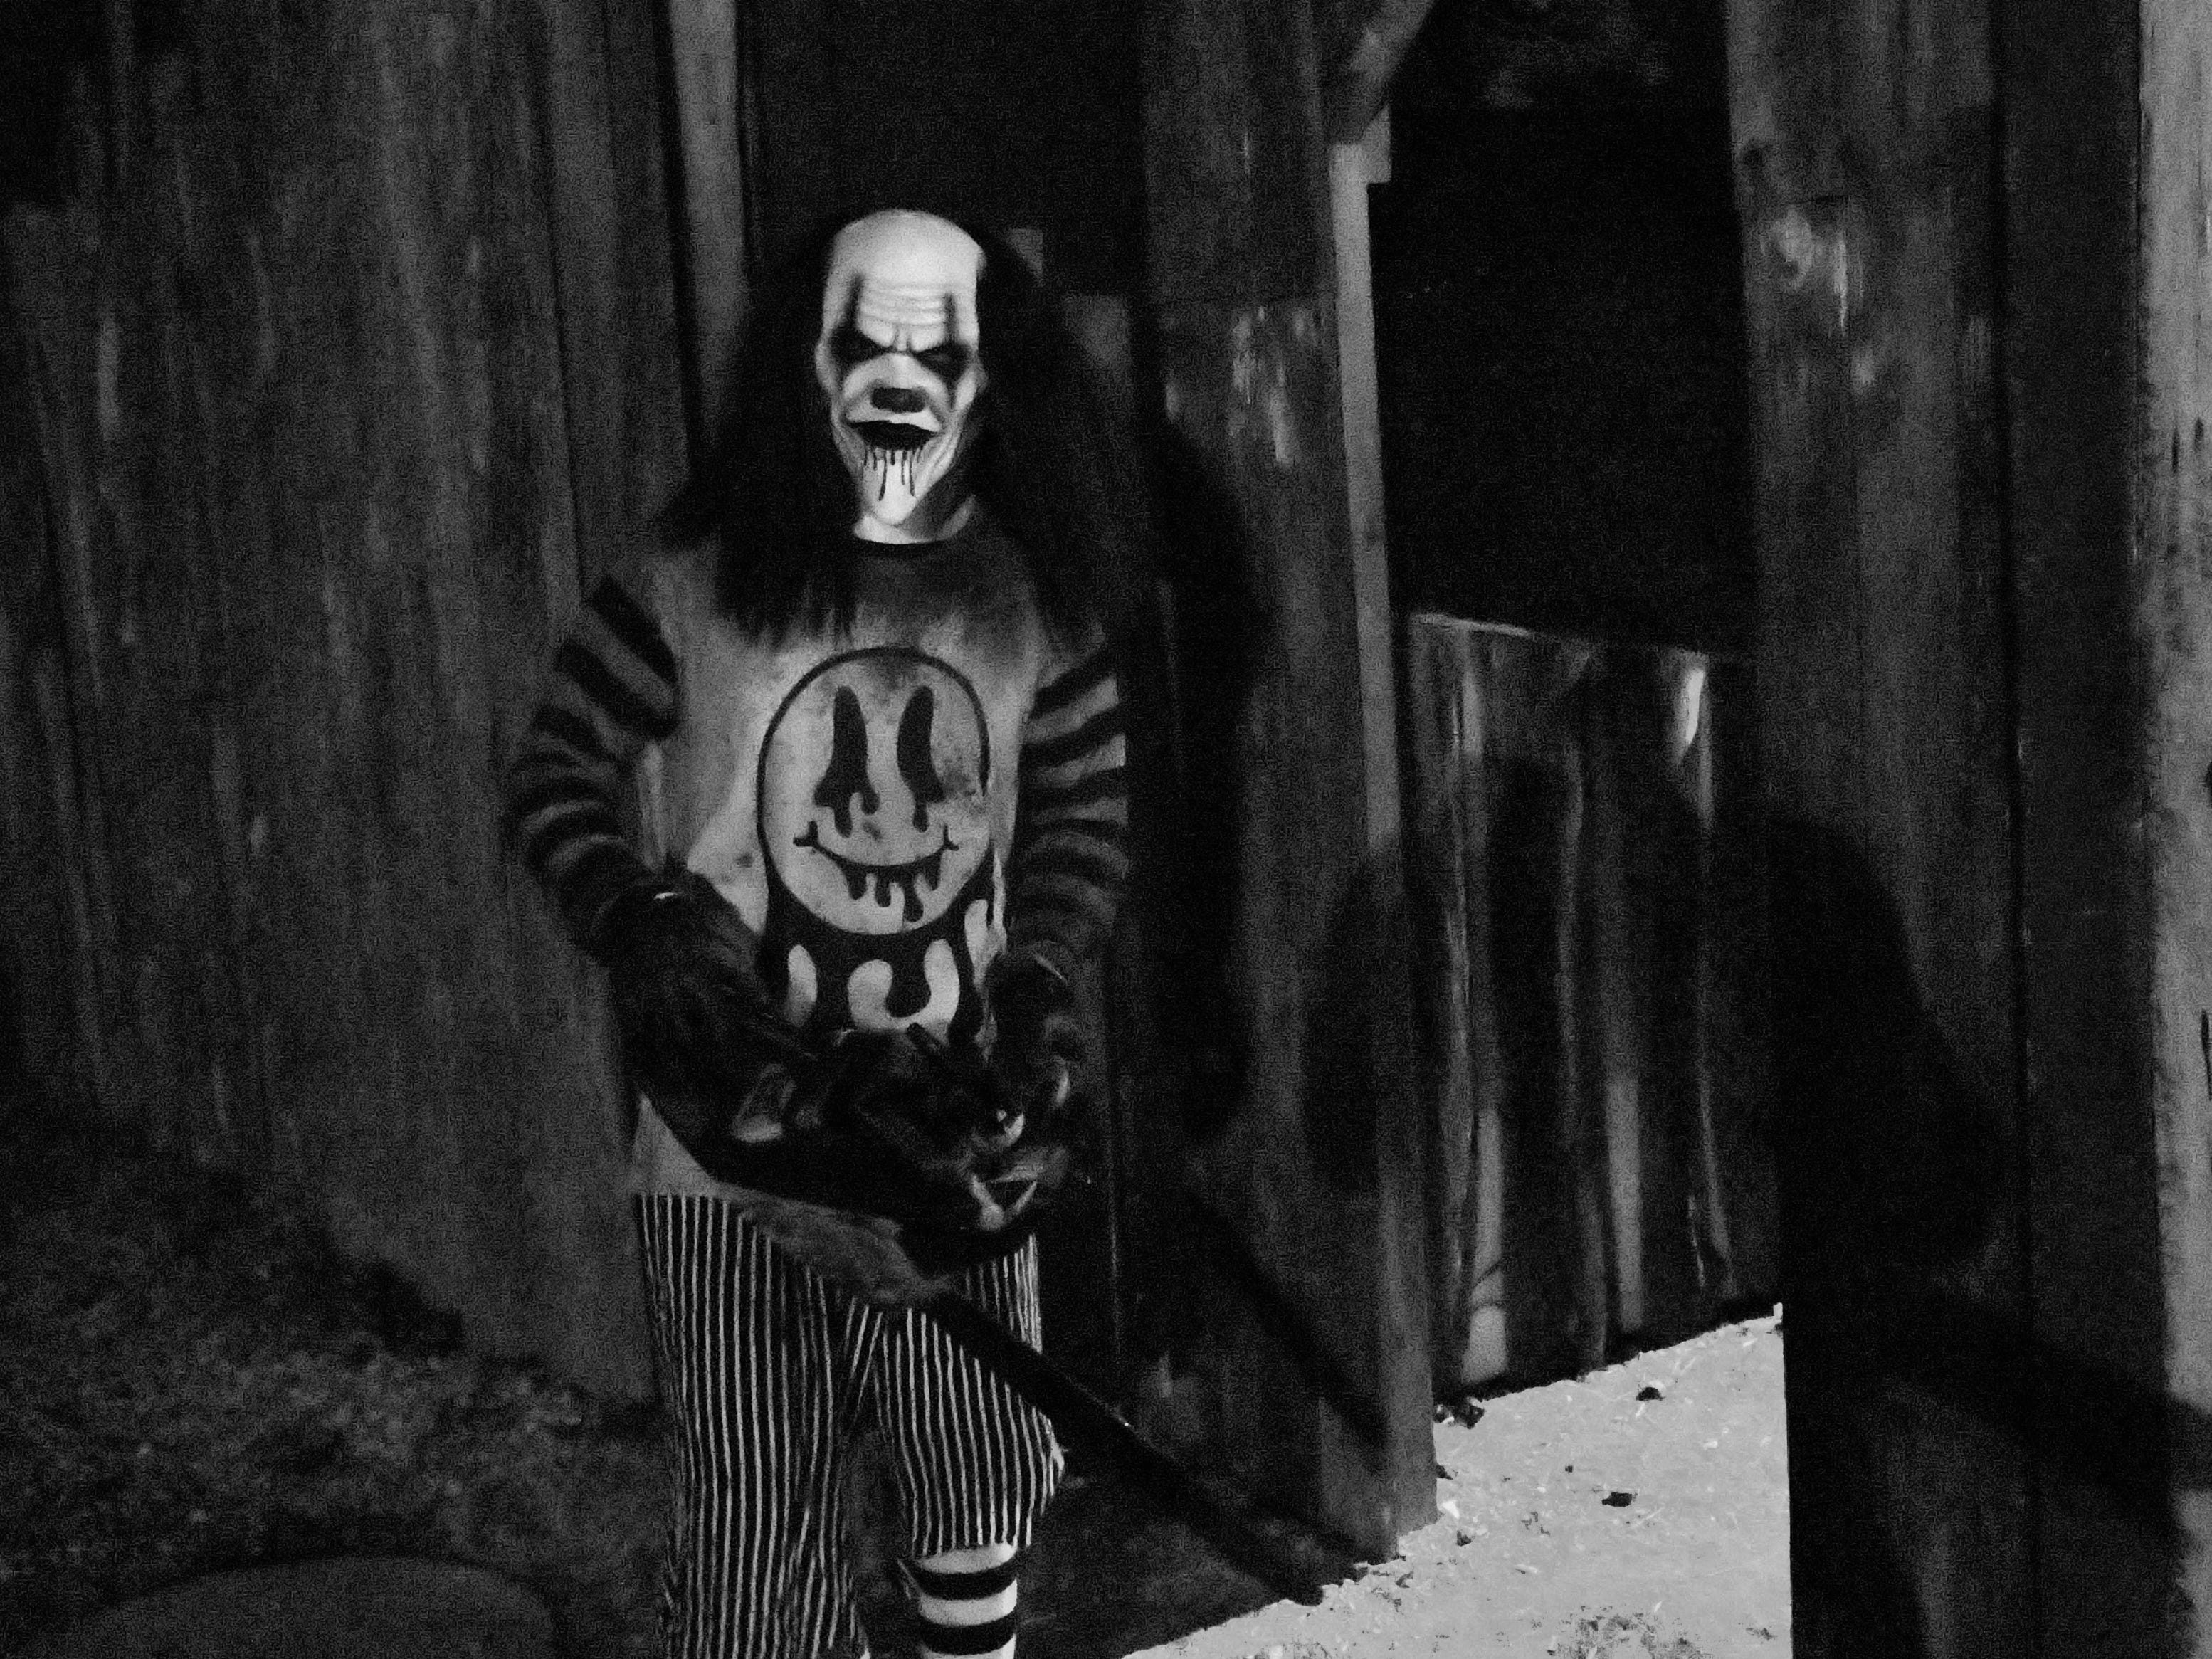 A menacing clown waits for unsuspecting people who escape the maze at Kim's Krypt Haunted Mill, October 12, 2018.